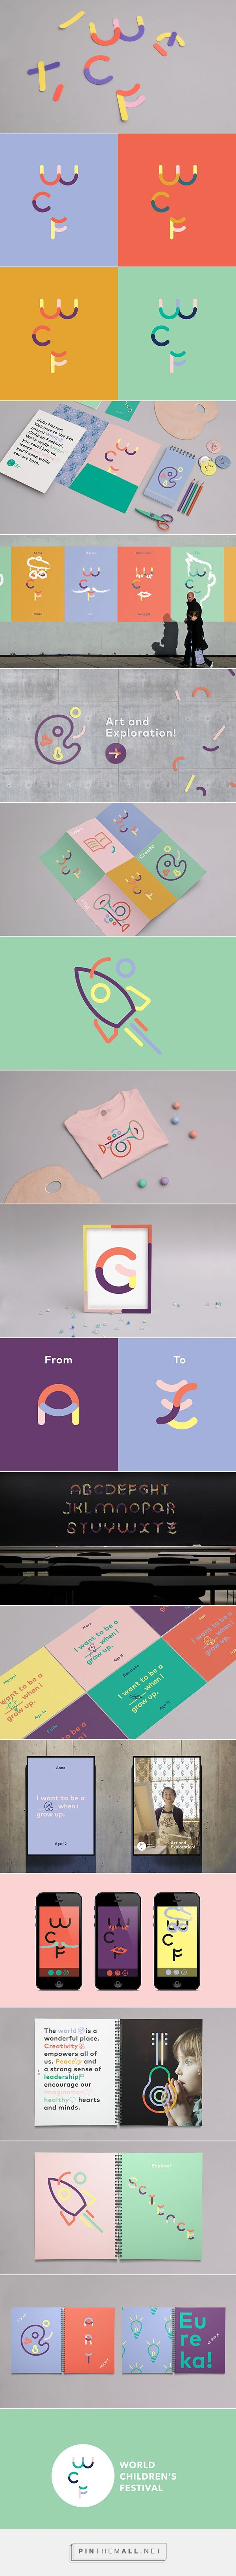 World Children's Festival on Branding Served - created via http://pinthemall.net